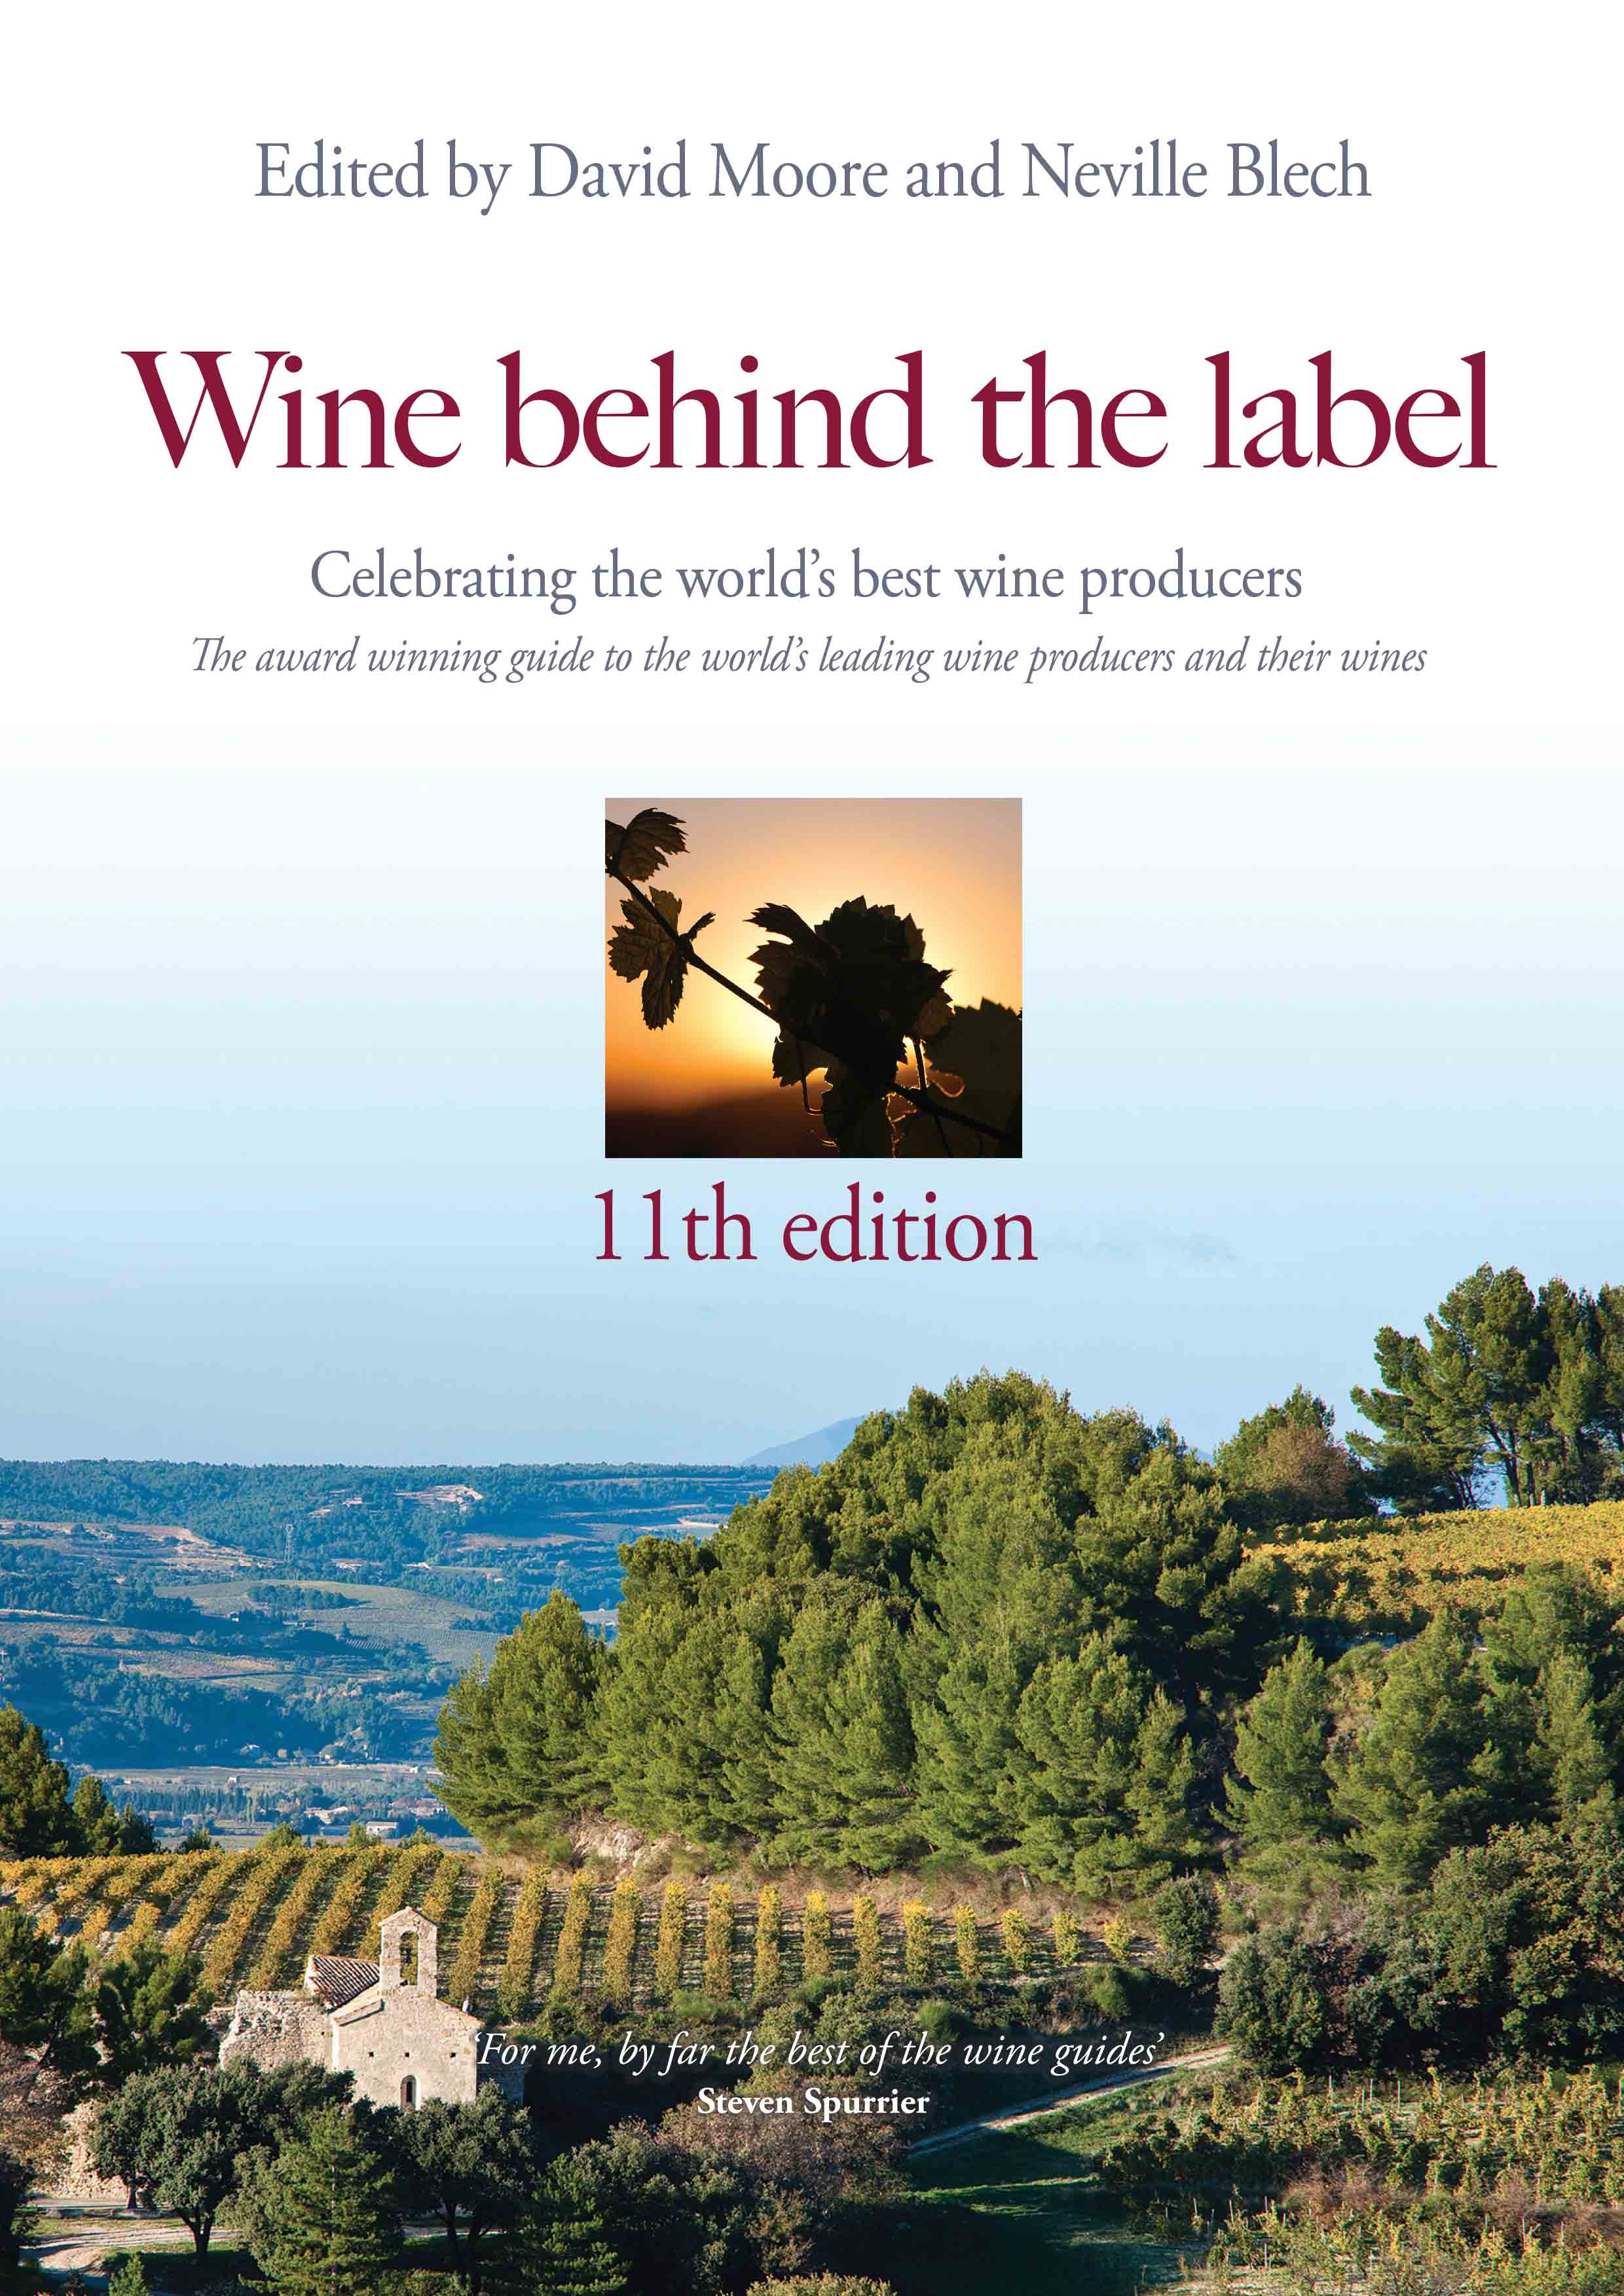 Wine behind the label 11th digital edition is ready for downloading